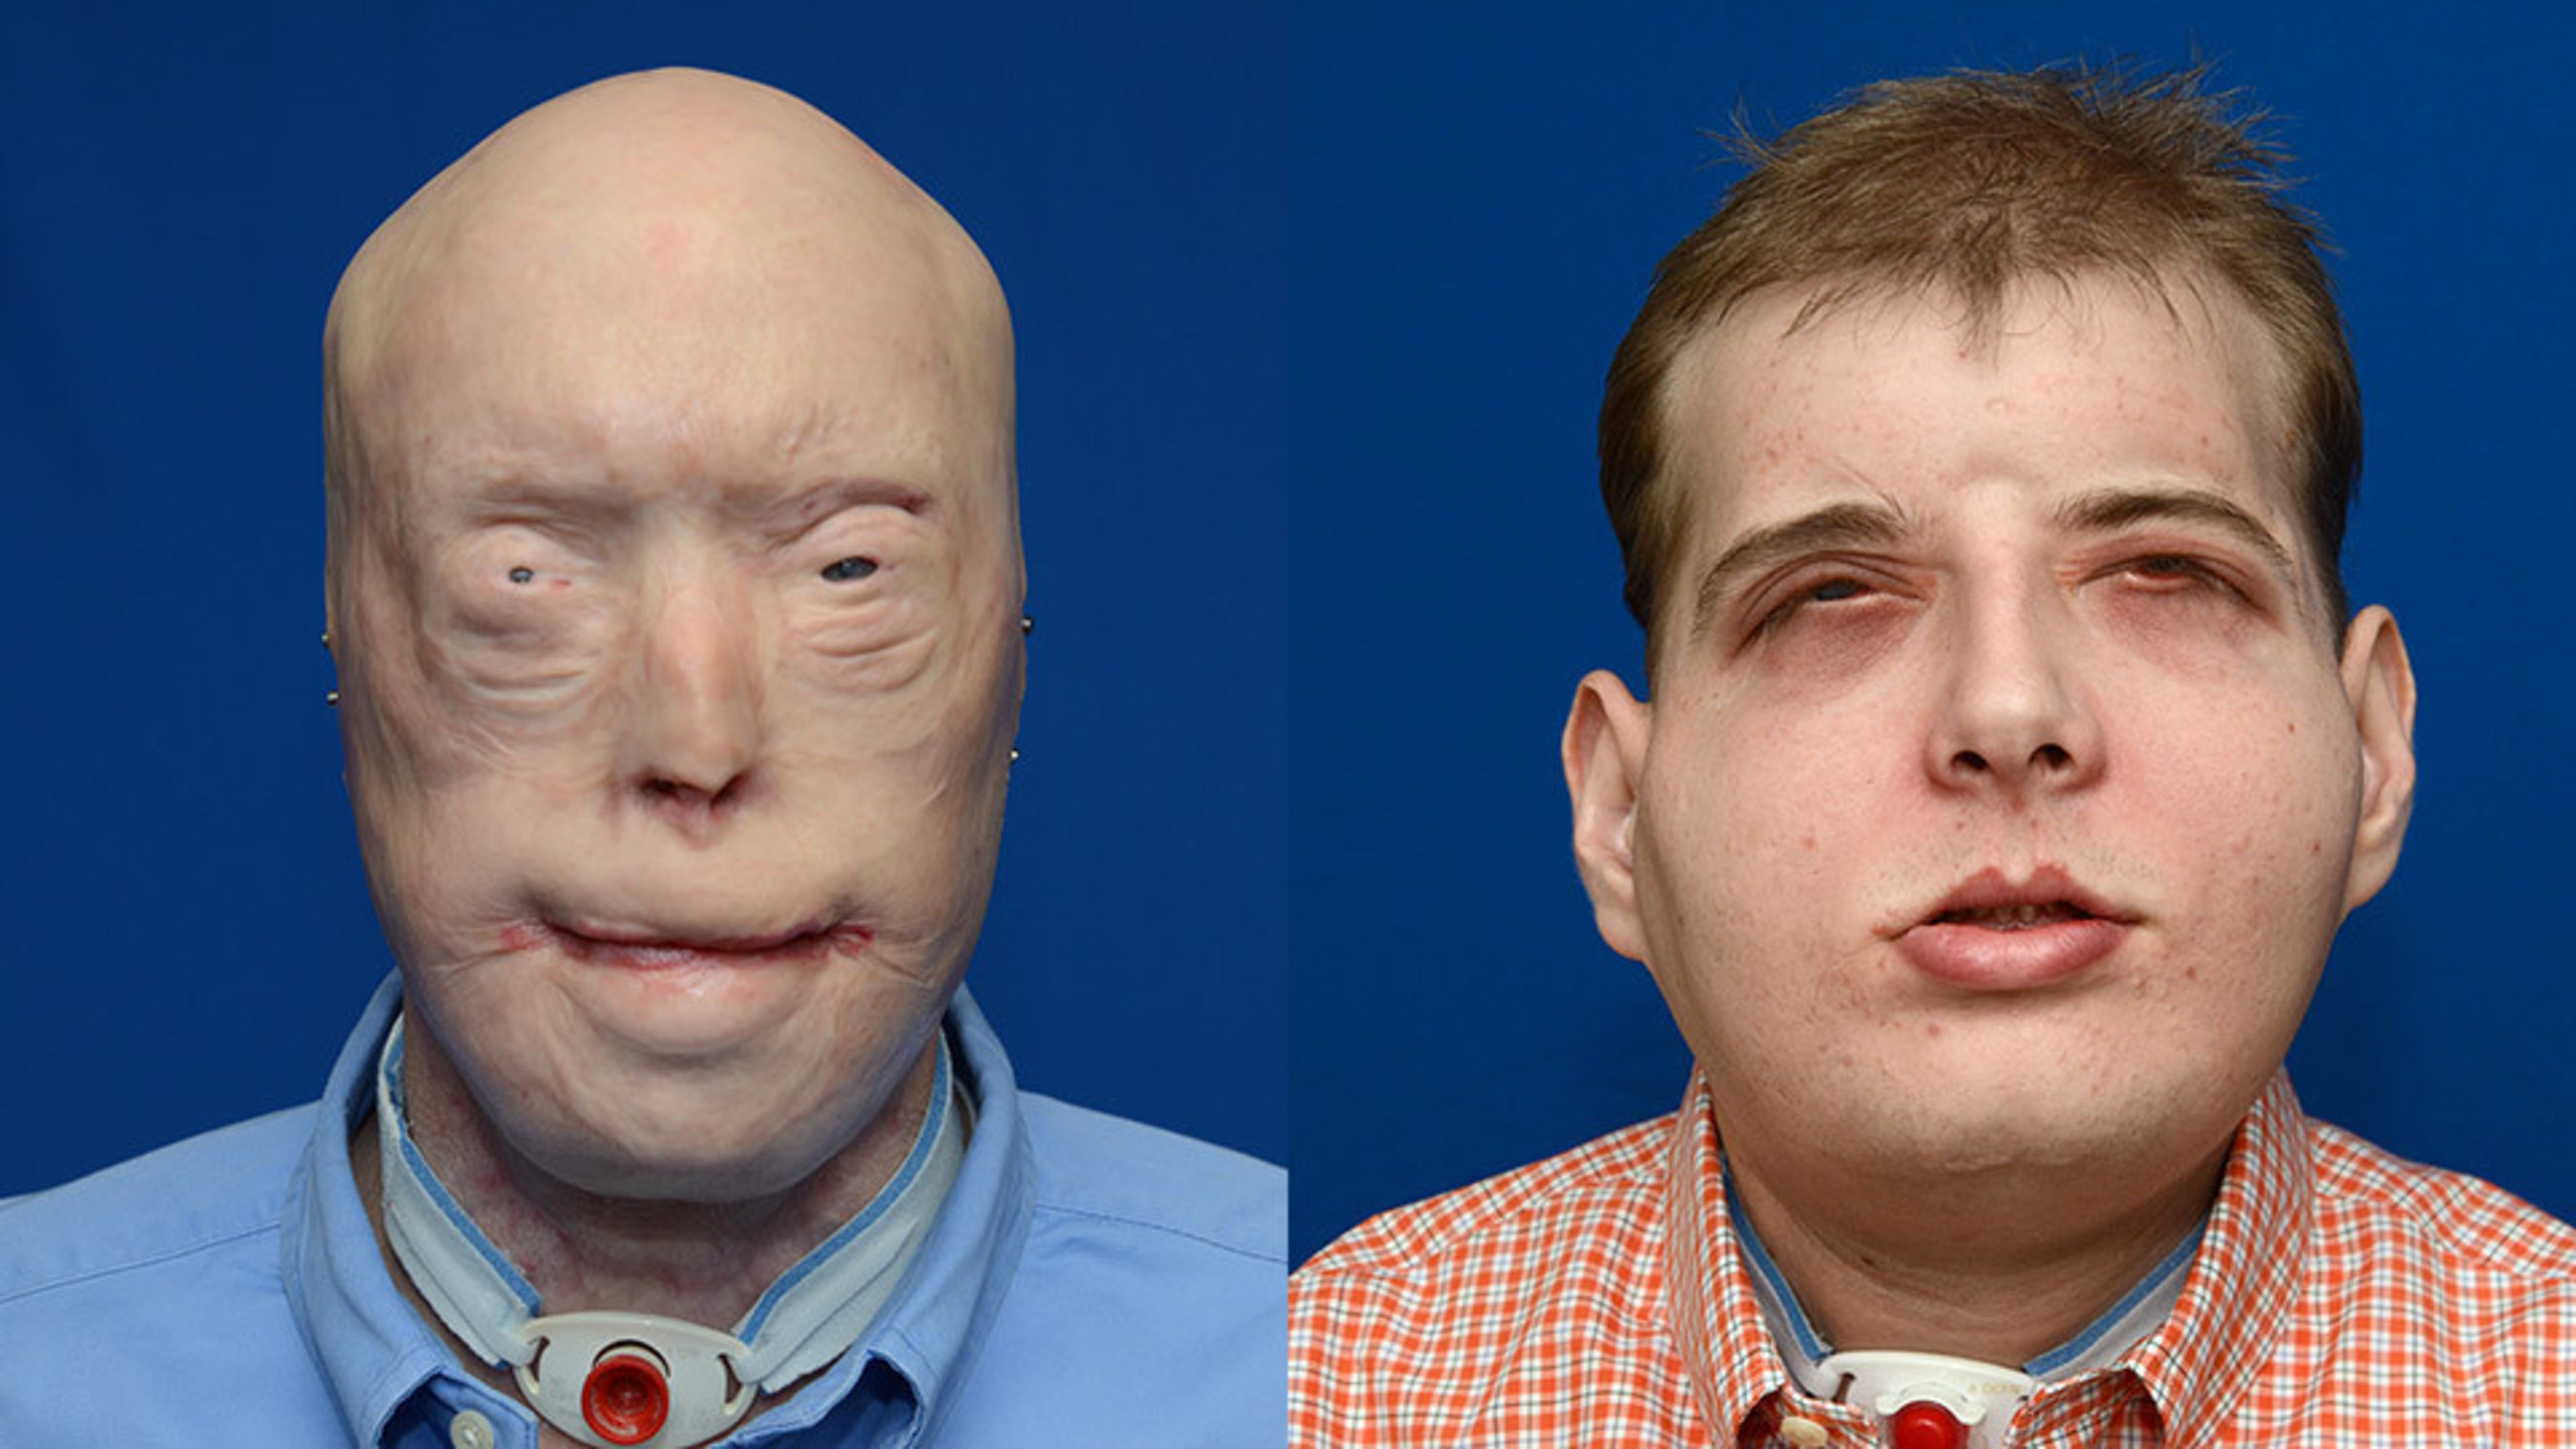 Patrick Hardison: before and after face transplant